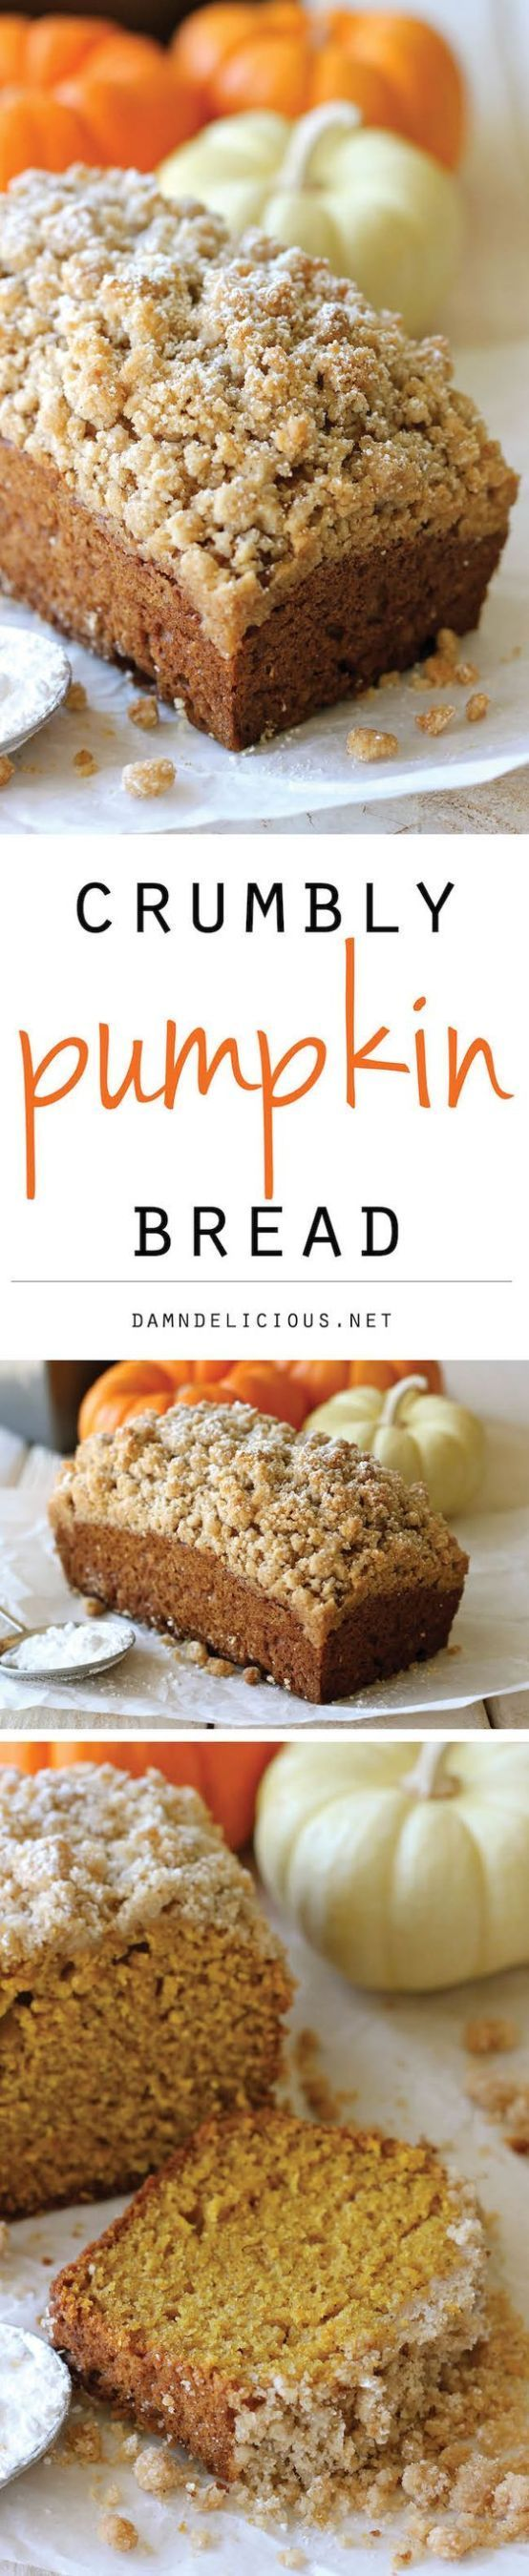 Crumbly Pumpkin Bread Recipe via Damn Delicious - With lightened-up options, this can be eaten guilt-free! And the crumb topping is out of this world amazing!